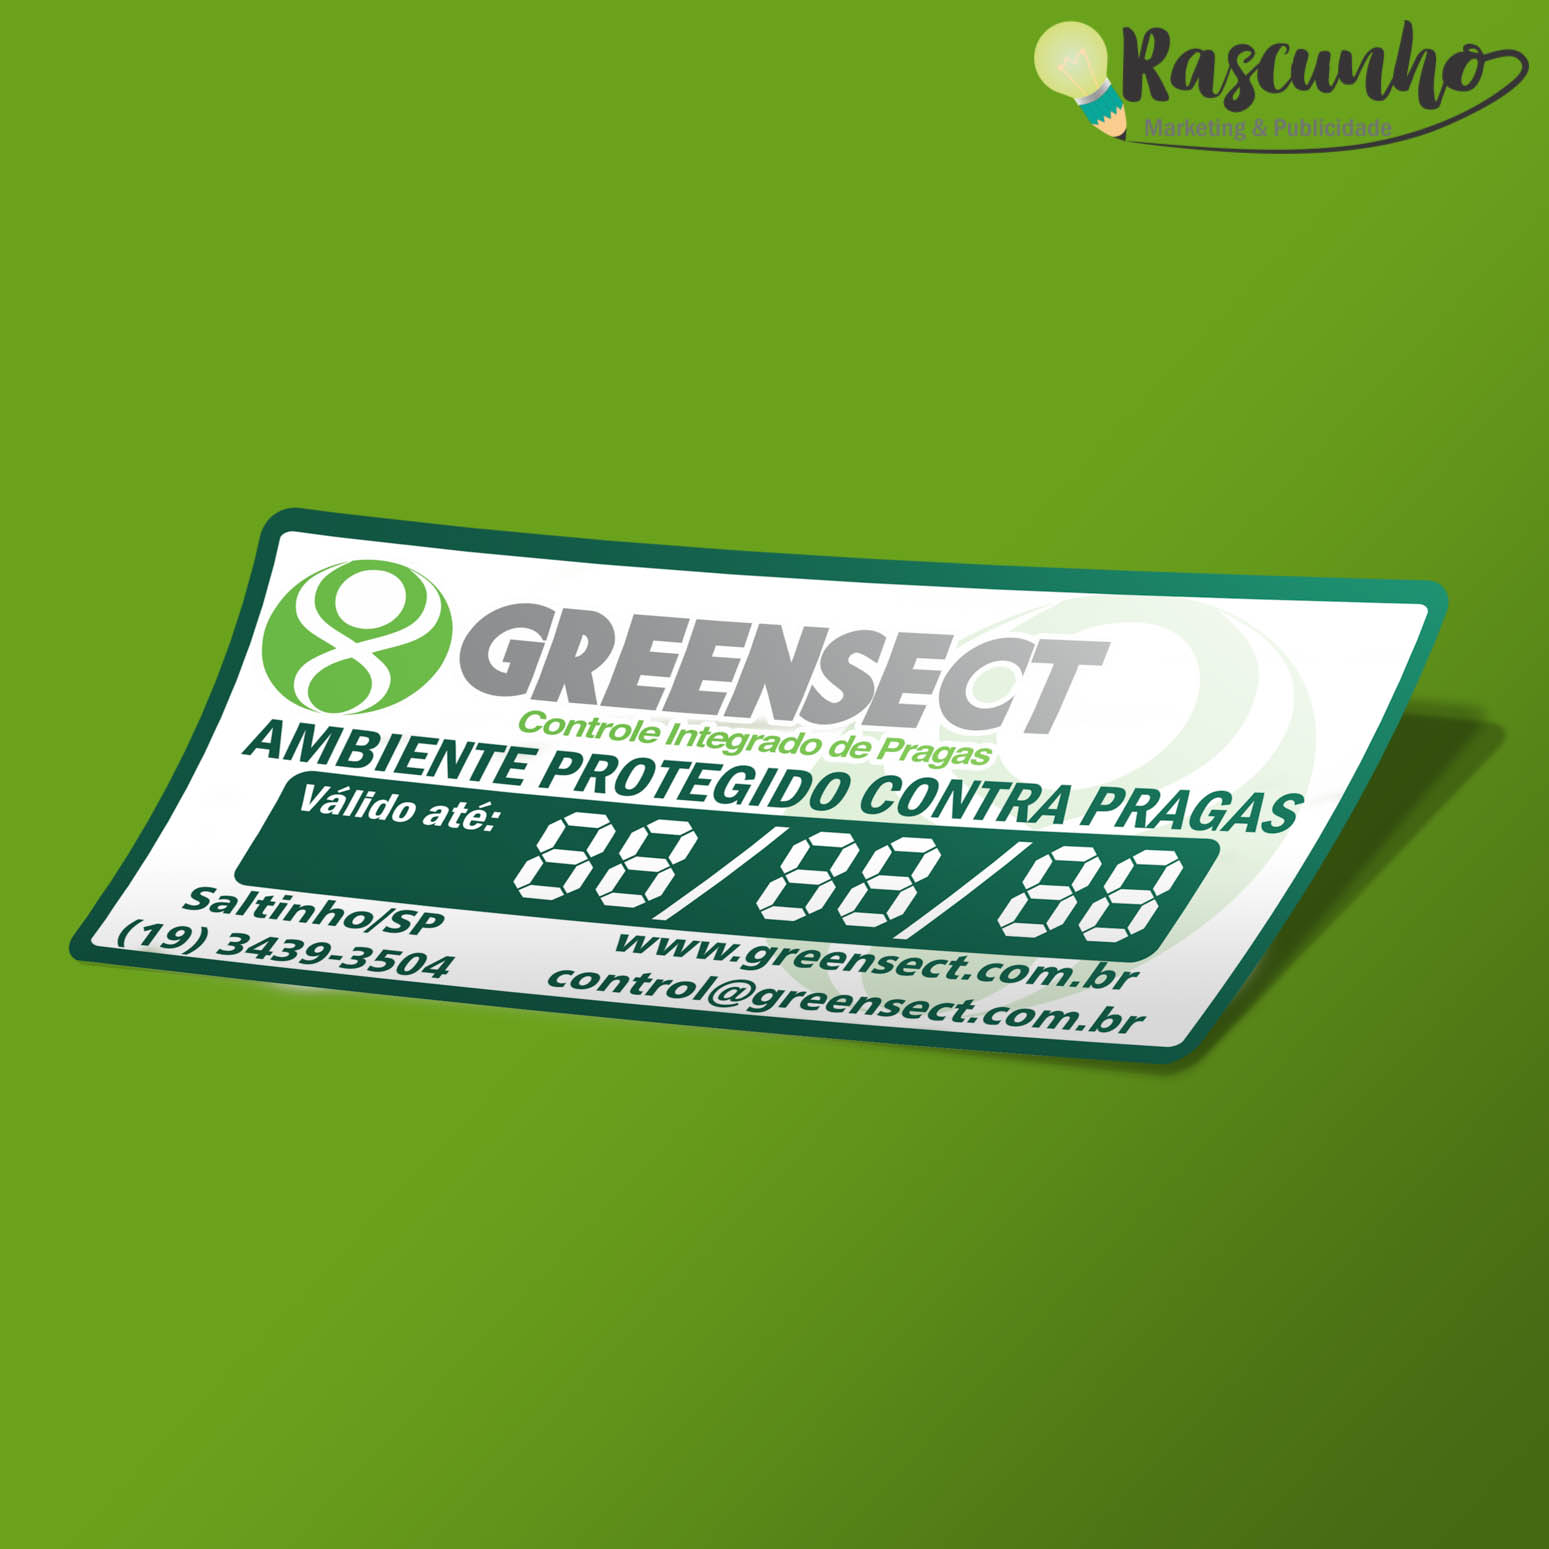 Greensect 1